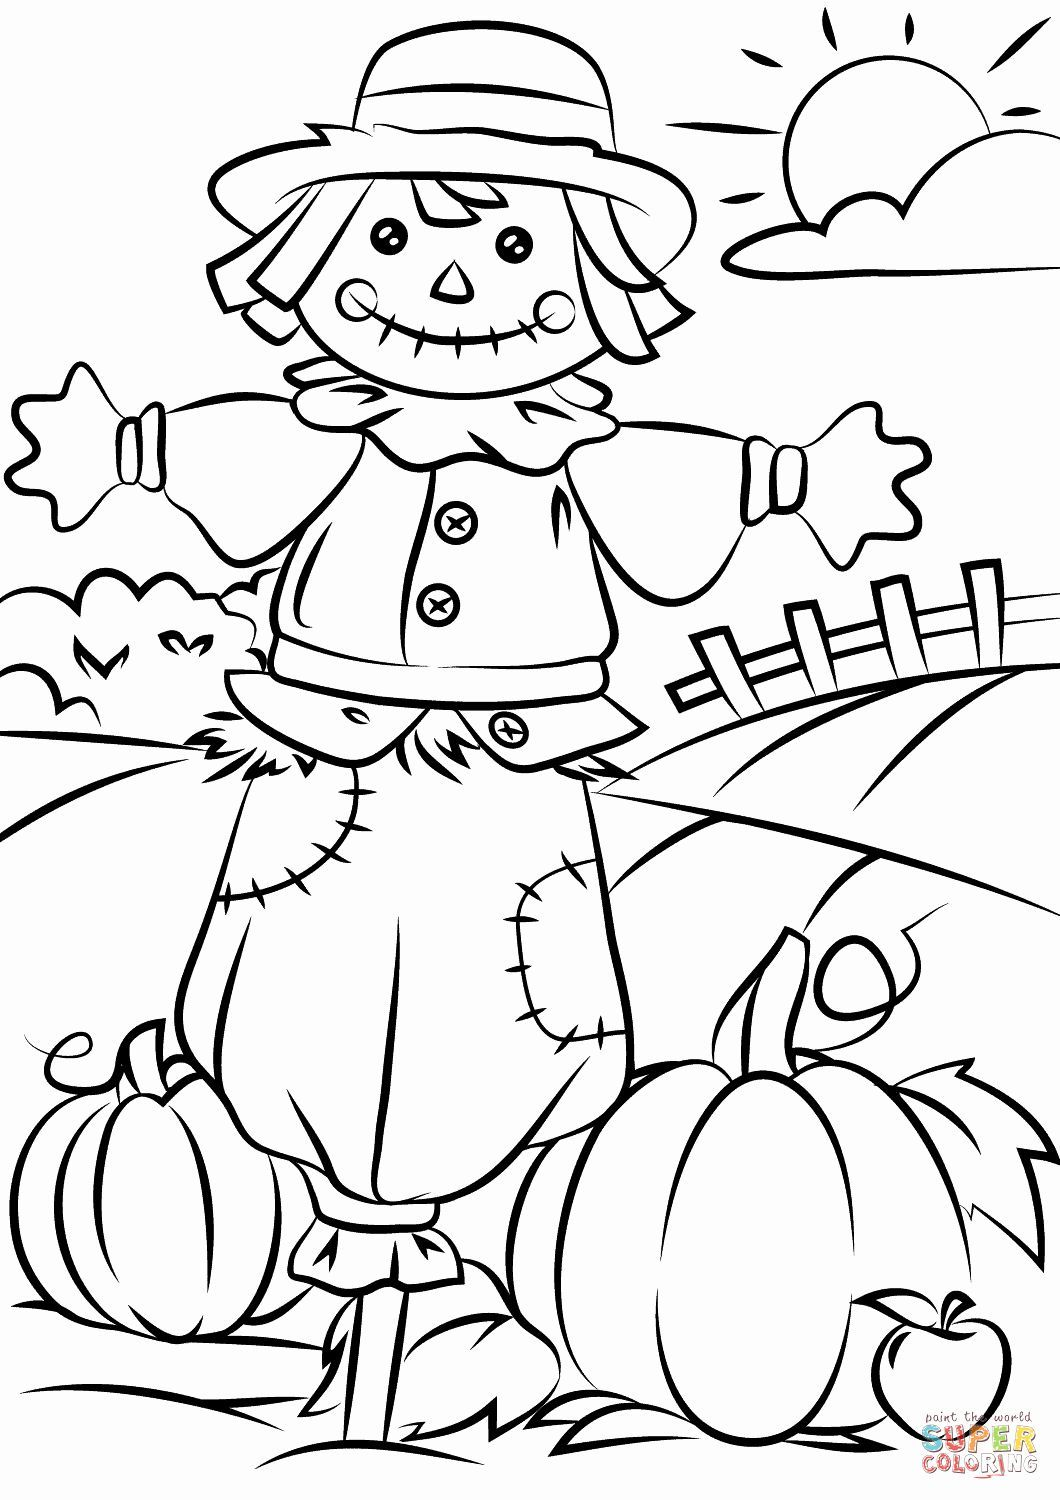 Fall Coloring Sheets Printable Fresh Autumn Scene With Scarecrow Color Scarecrow Coloring Pages Free Printable Fall Coloring Sheets Thanksgiving Coloring Pages